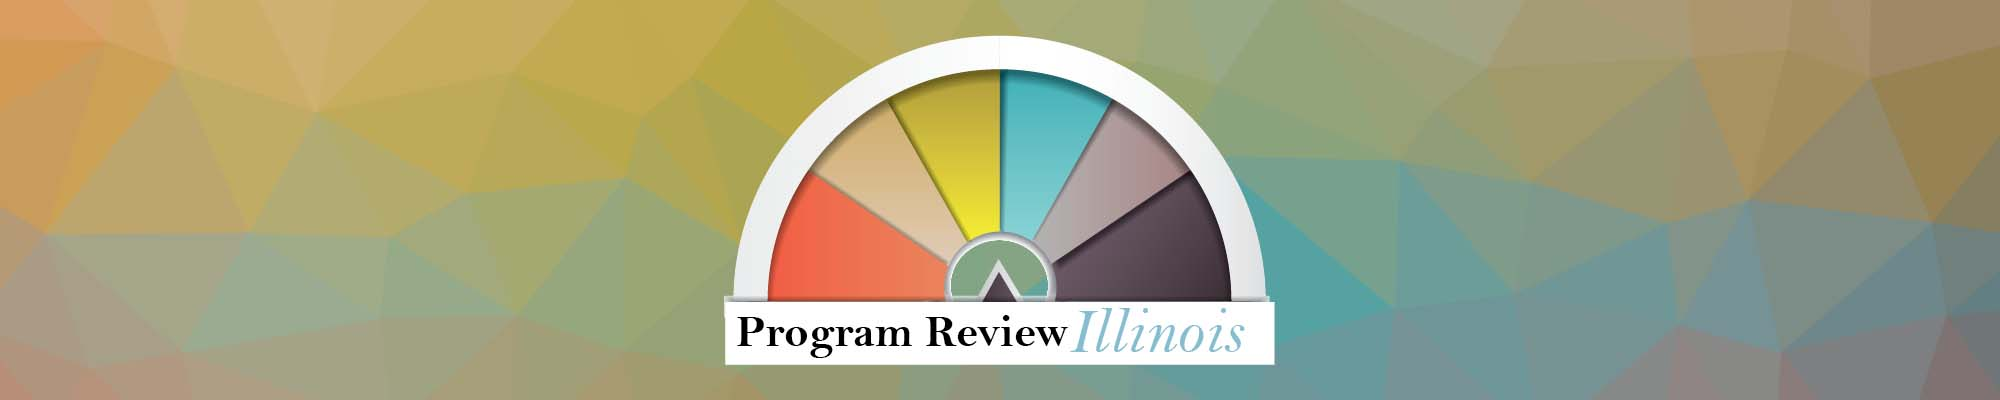 Program Review Illinois banner